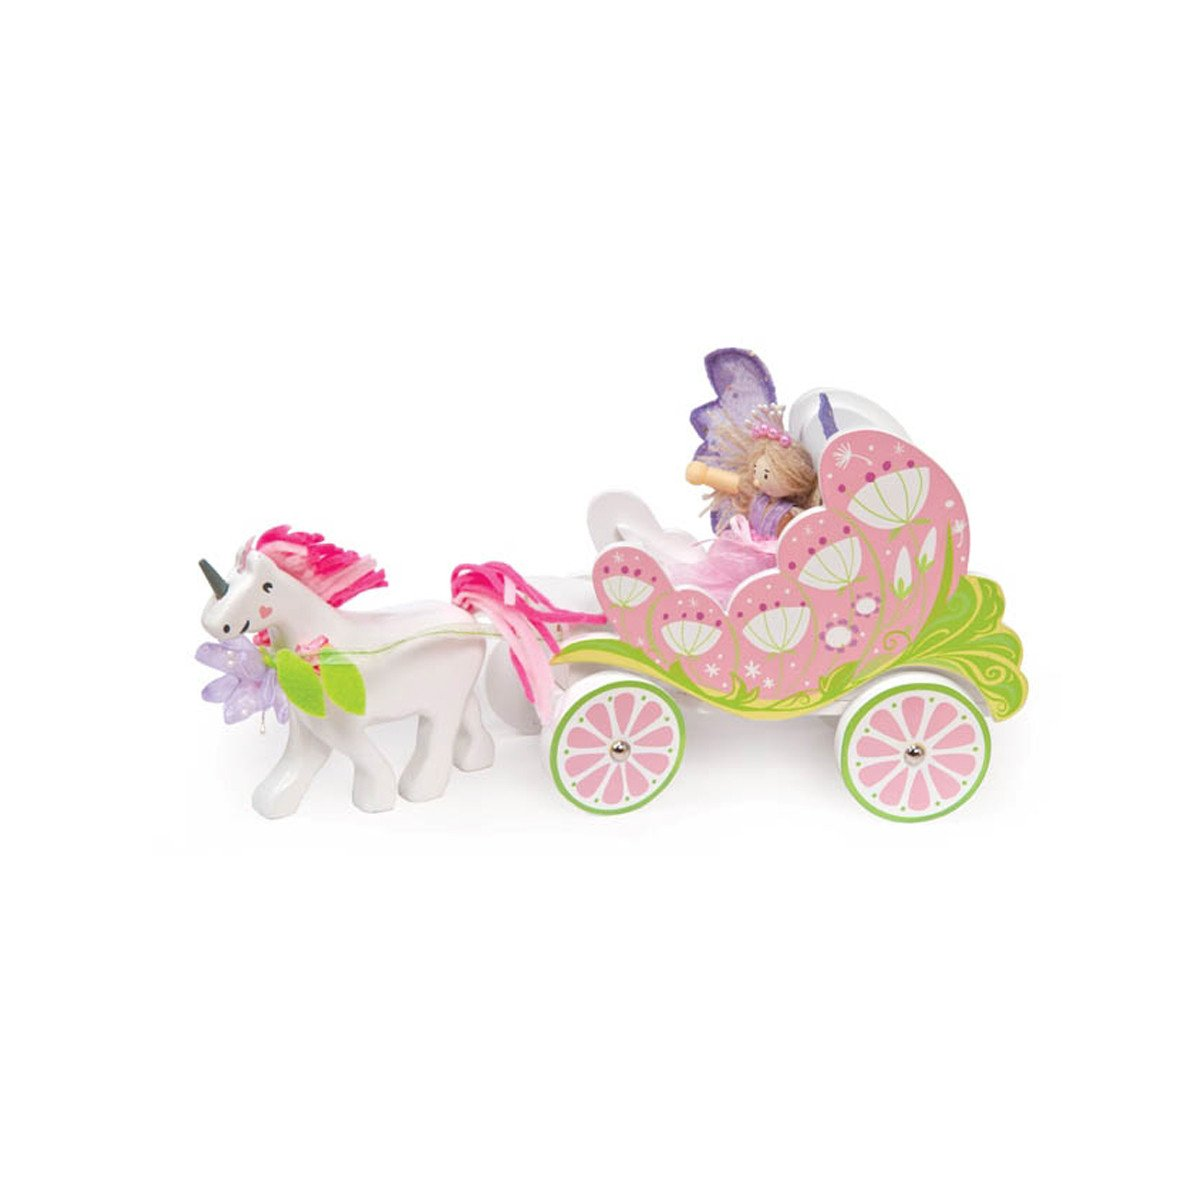 Le Toy Van Fairybelle Carriage and Unicorn Le Toy Van Dollhouse Accessories at Little Earth Nest Eco Shop